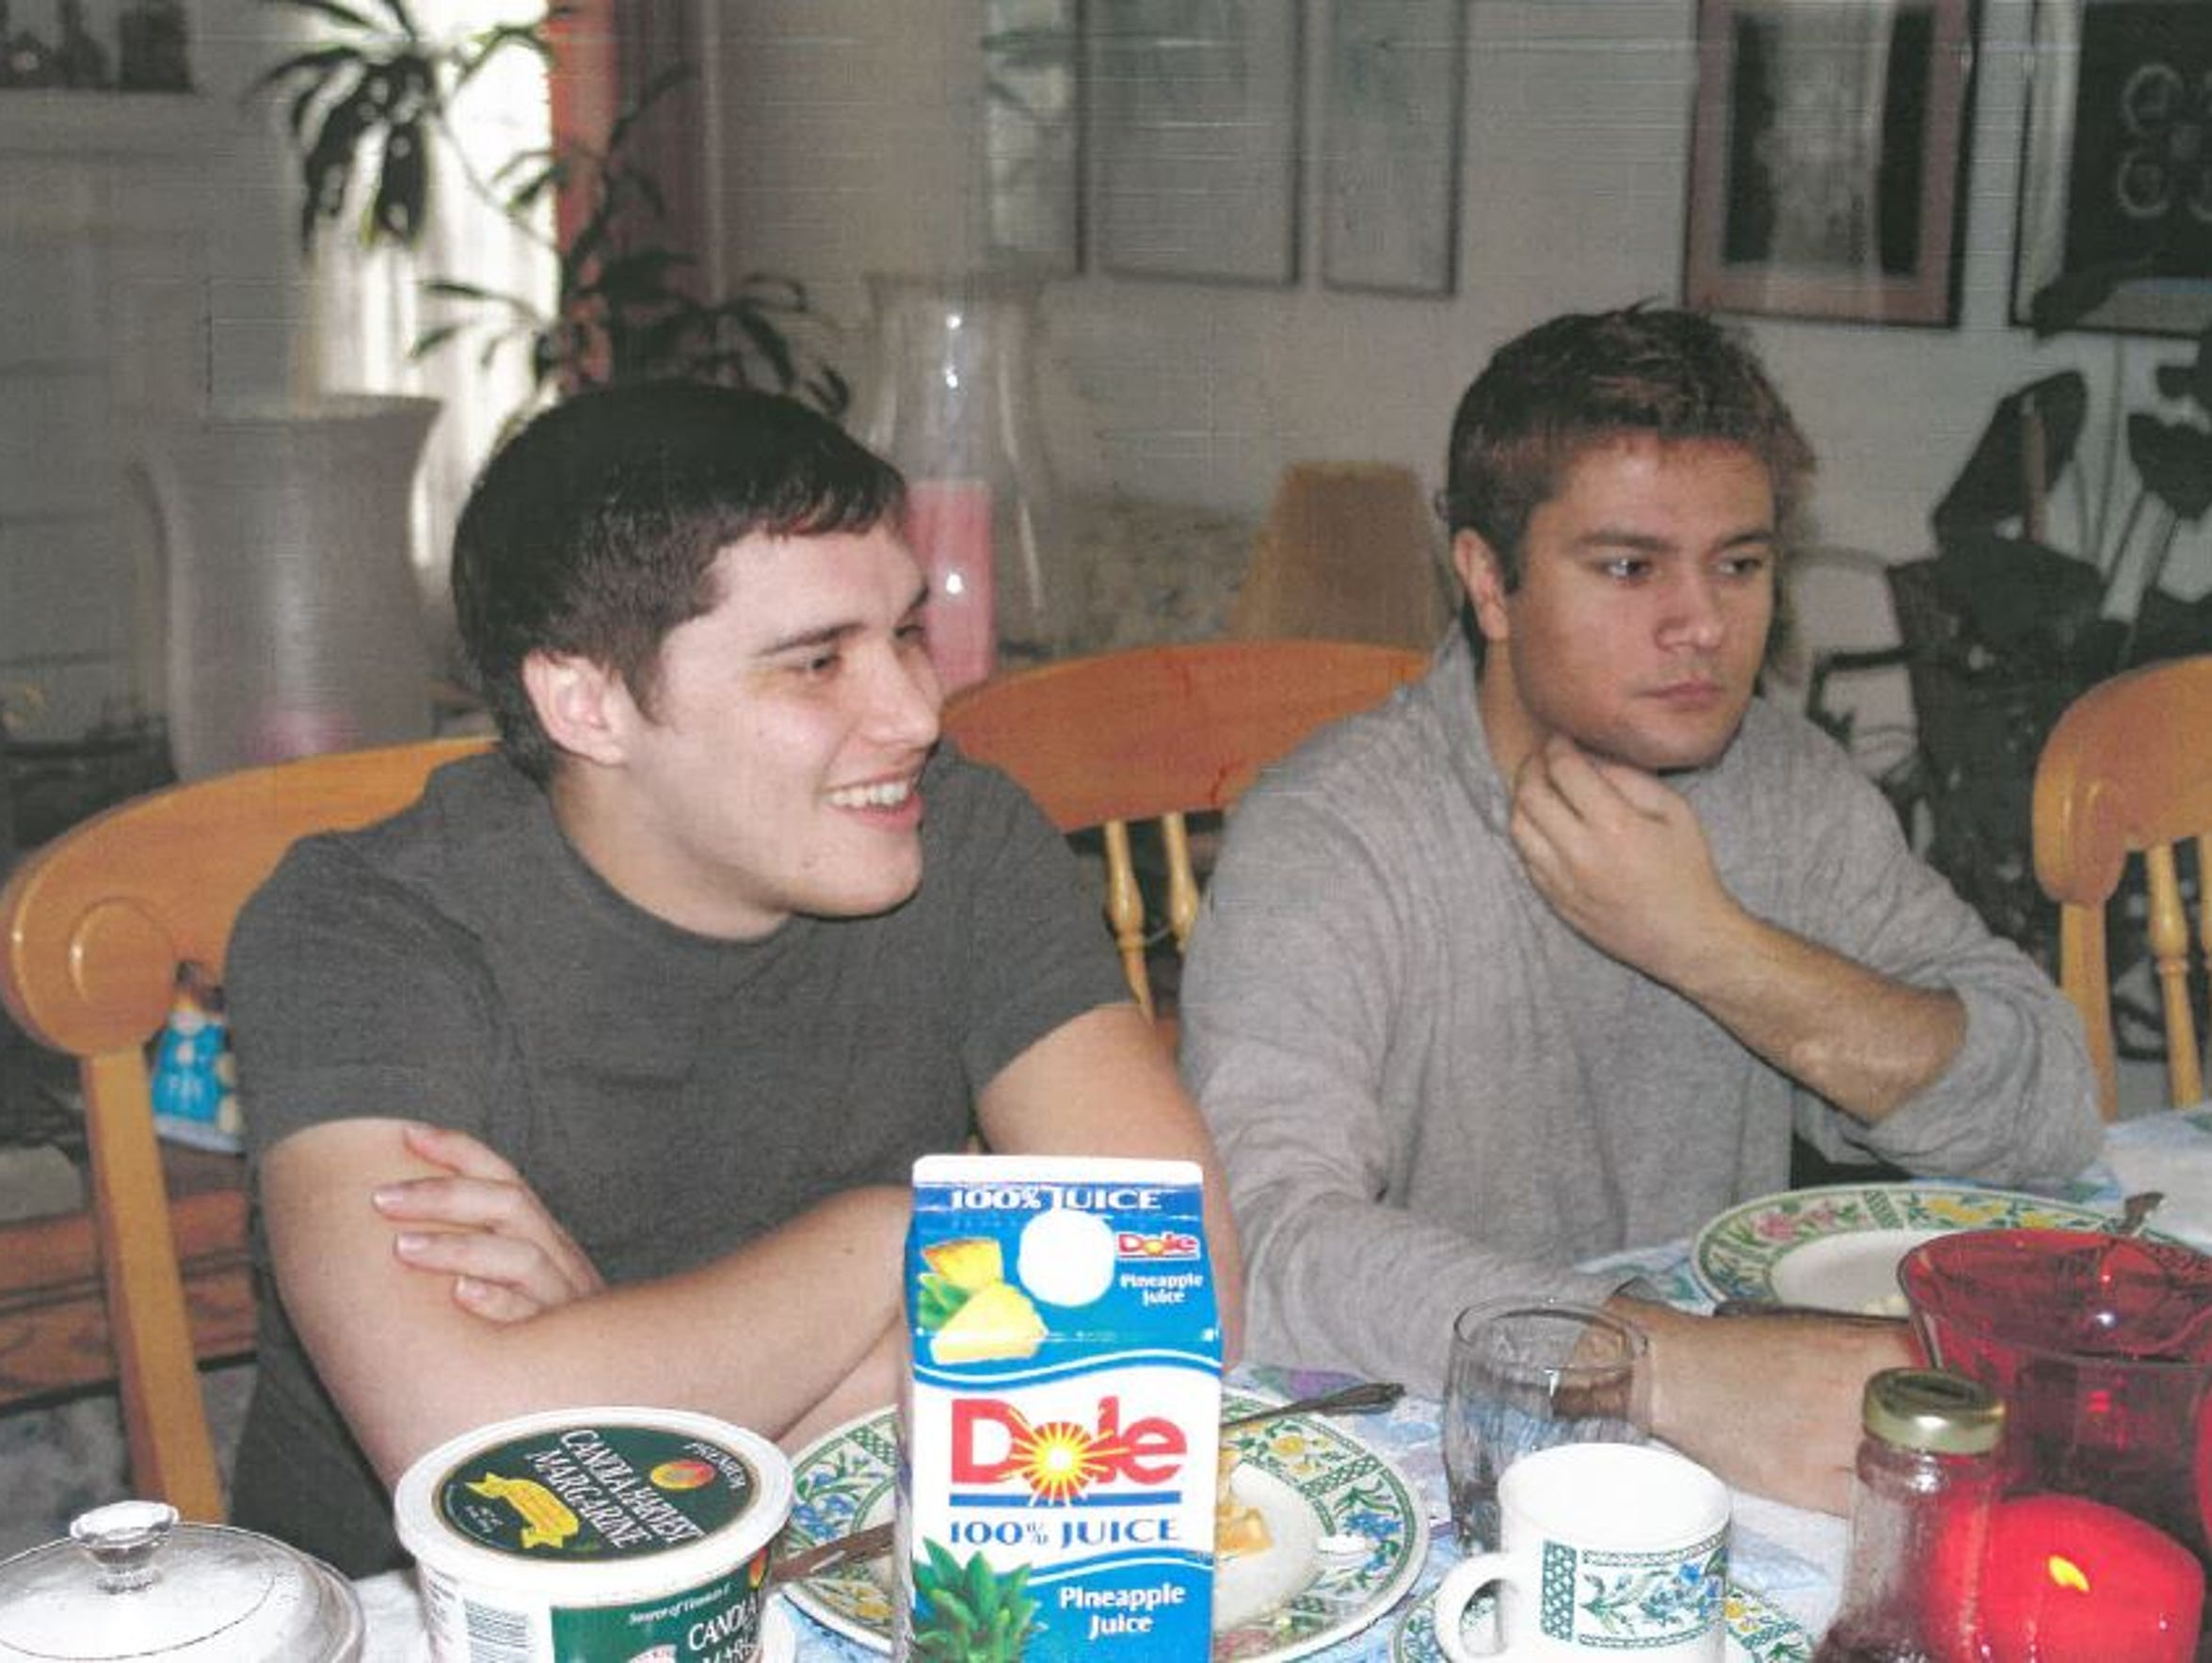 David Garica, left, and Kaushal Niroula, who were convicted